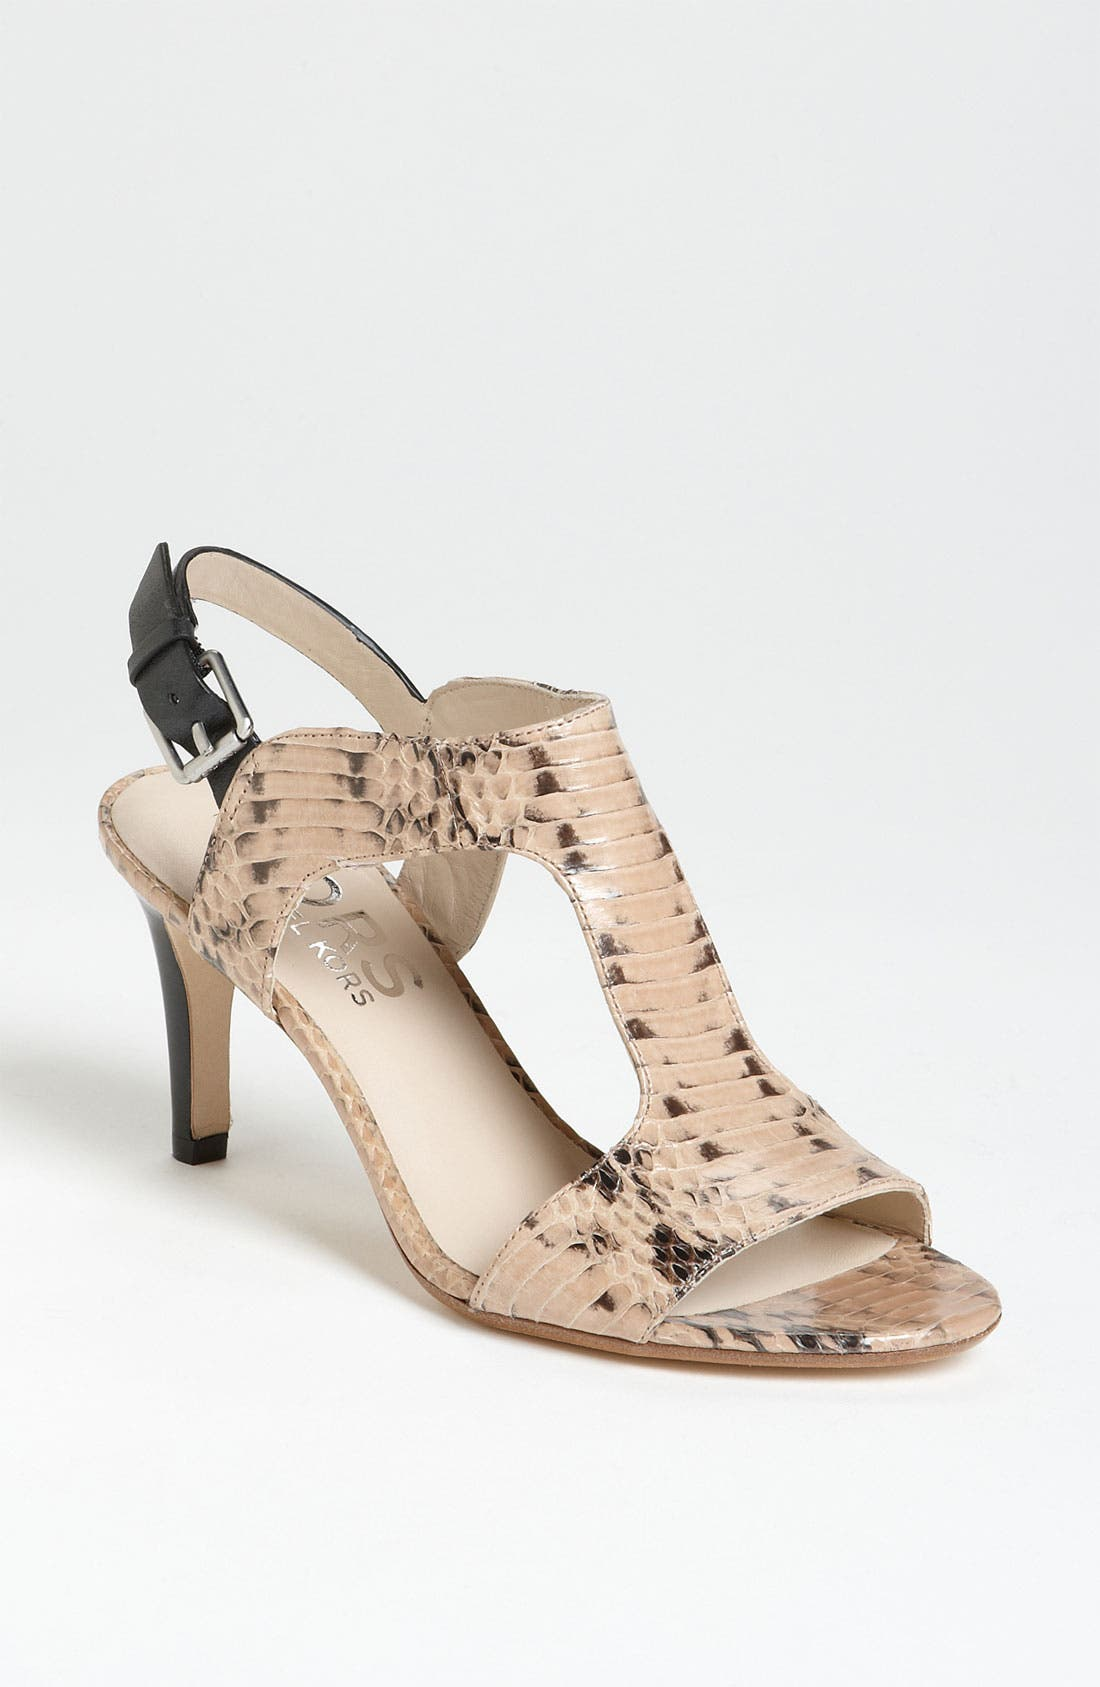 Alternate Image 1 Selected - KORS Michael Kors 'Xyla' Sandal